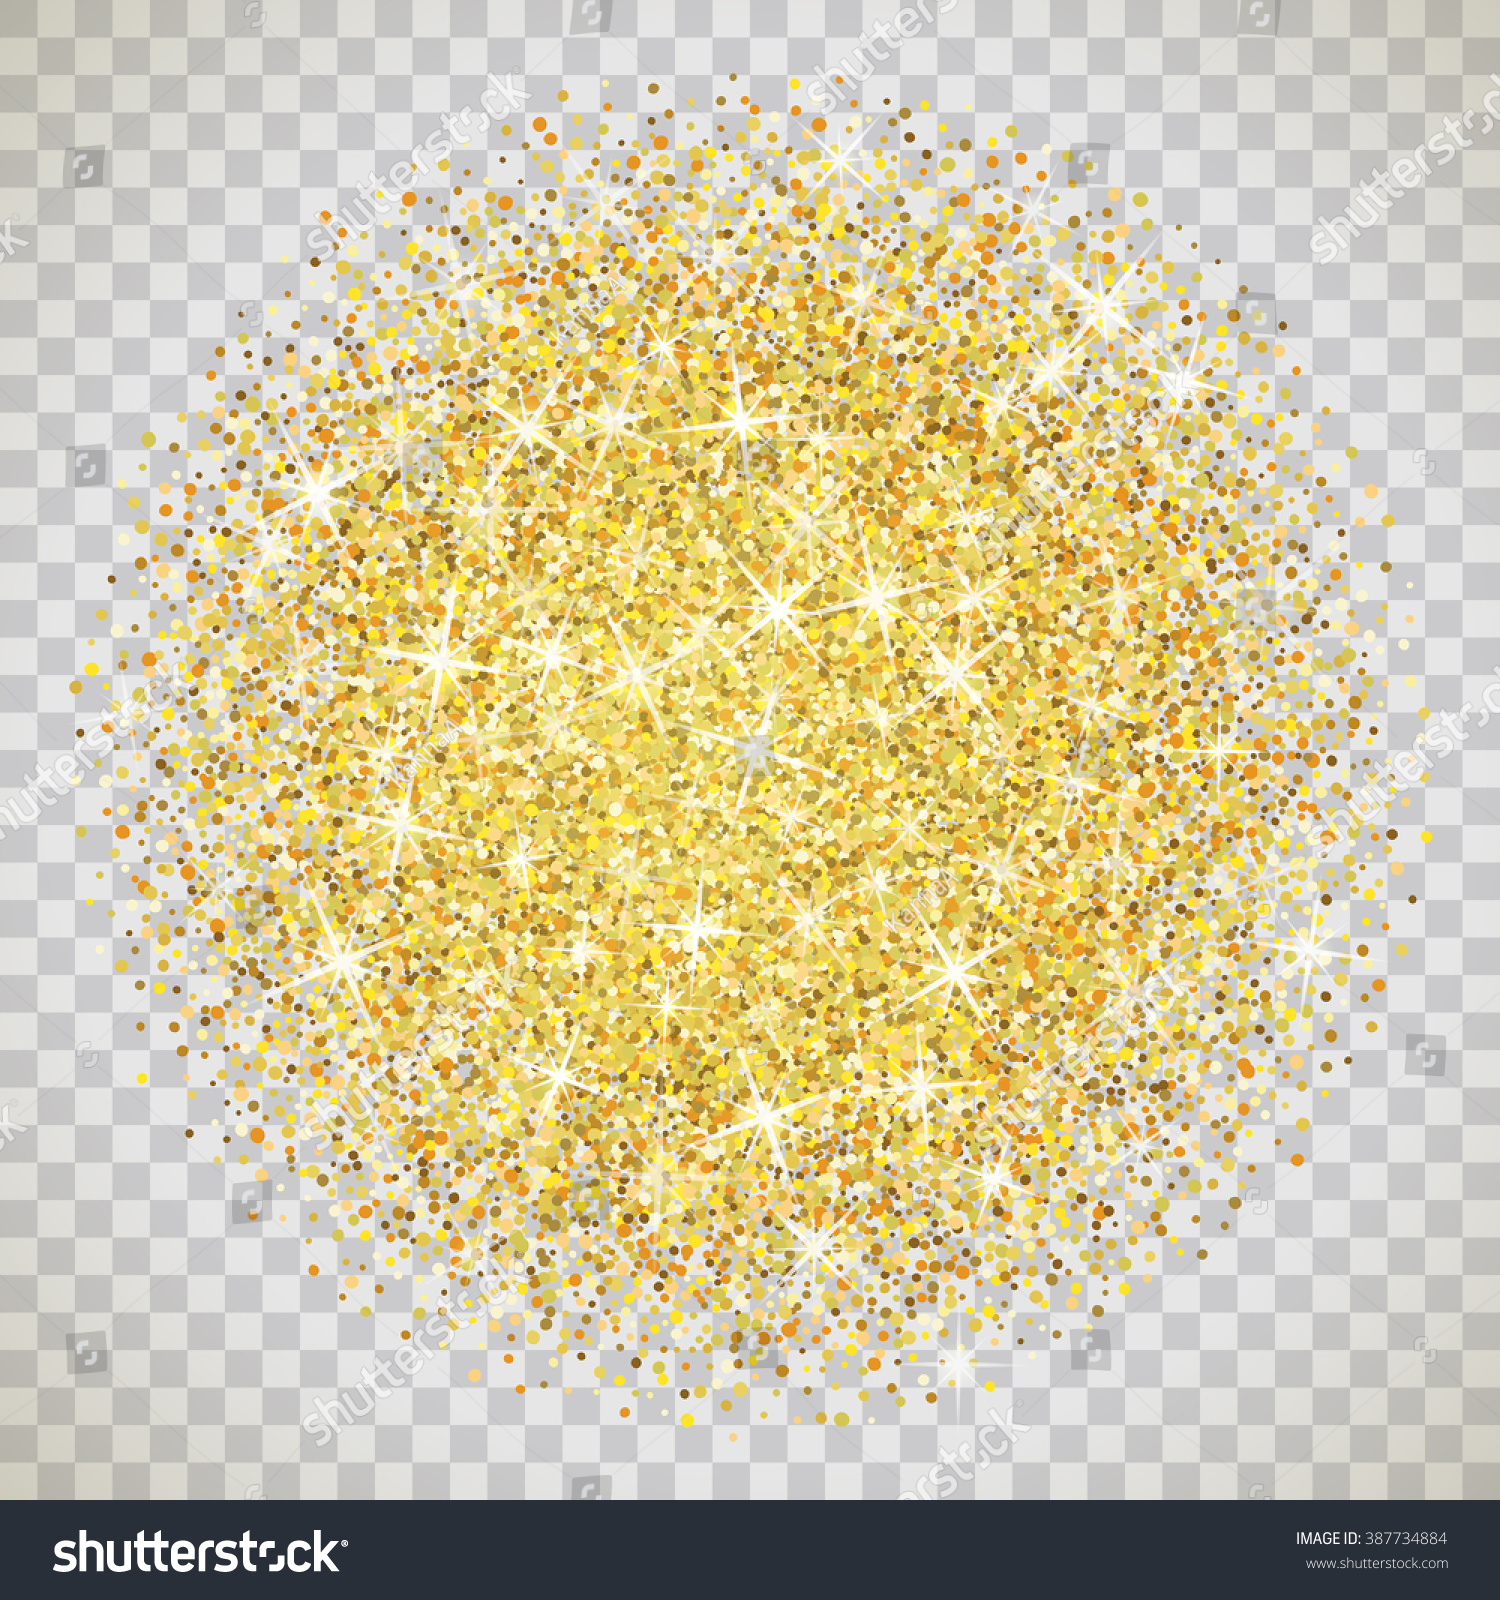 Gold glitter bright vector transparent background golden sparkles - Gold Glitter Texture Isolated On Transparent Background Vector Illustration For Golden Shimmer Background Sparkle